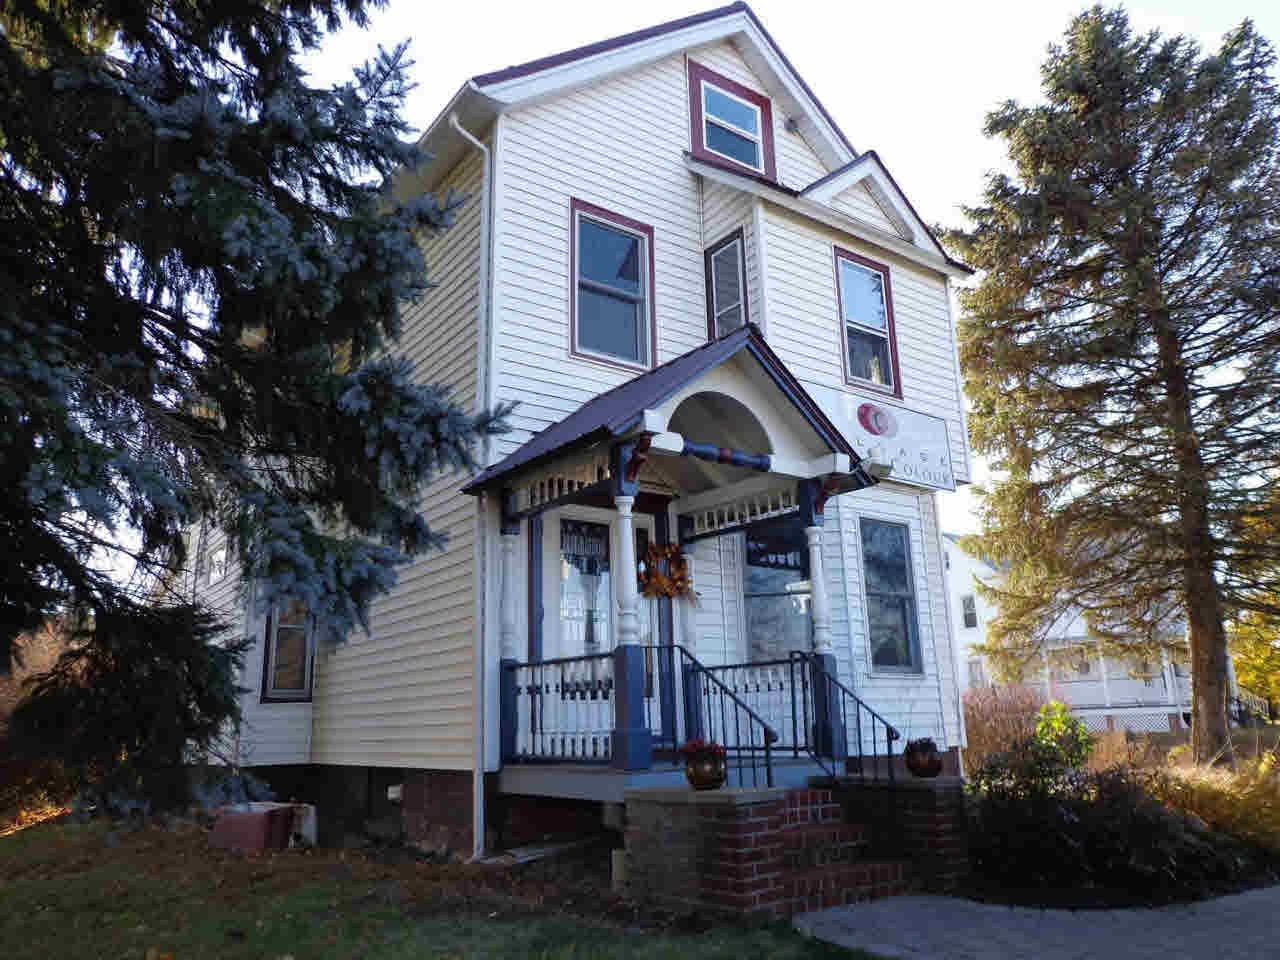 5 Manchester, Poughkeepsie Twp, NY 12603